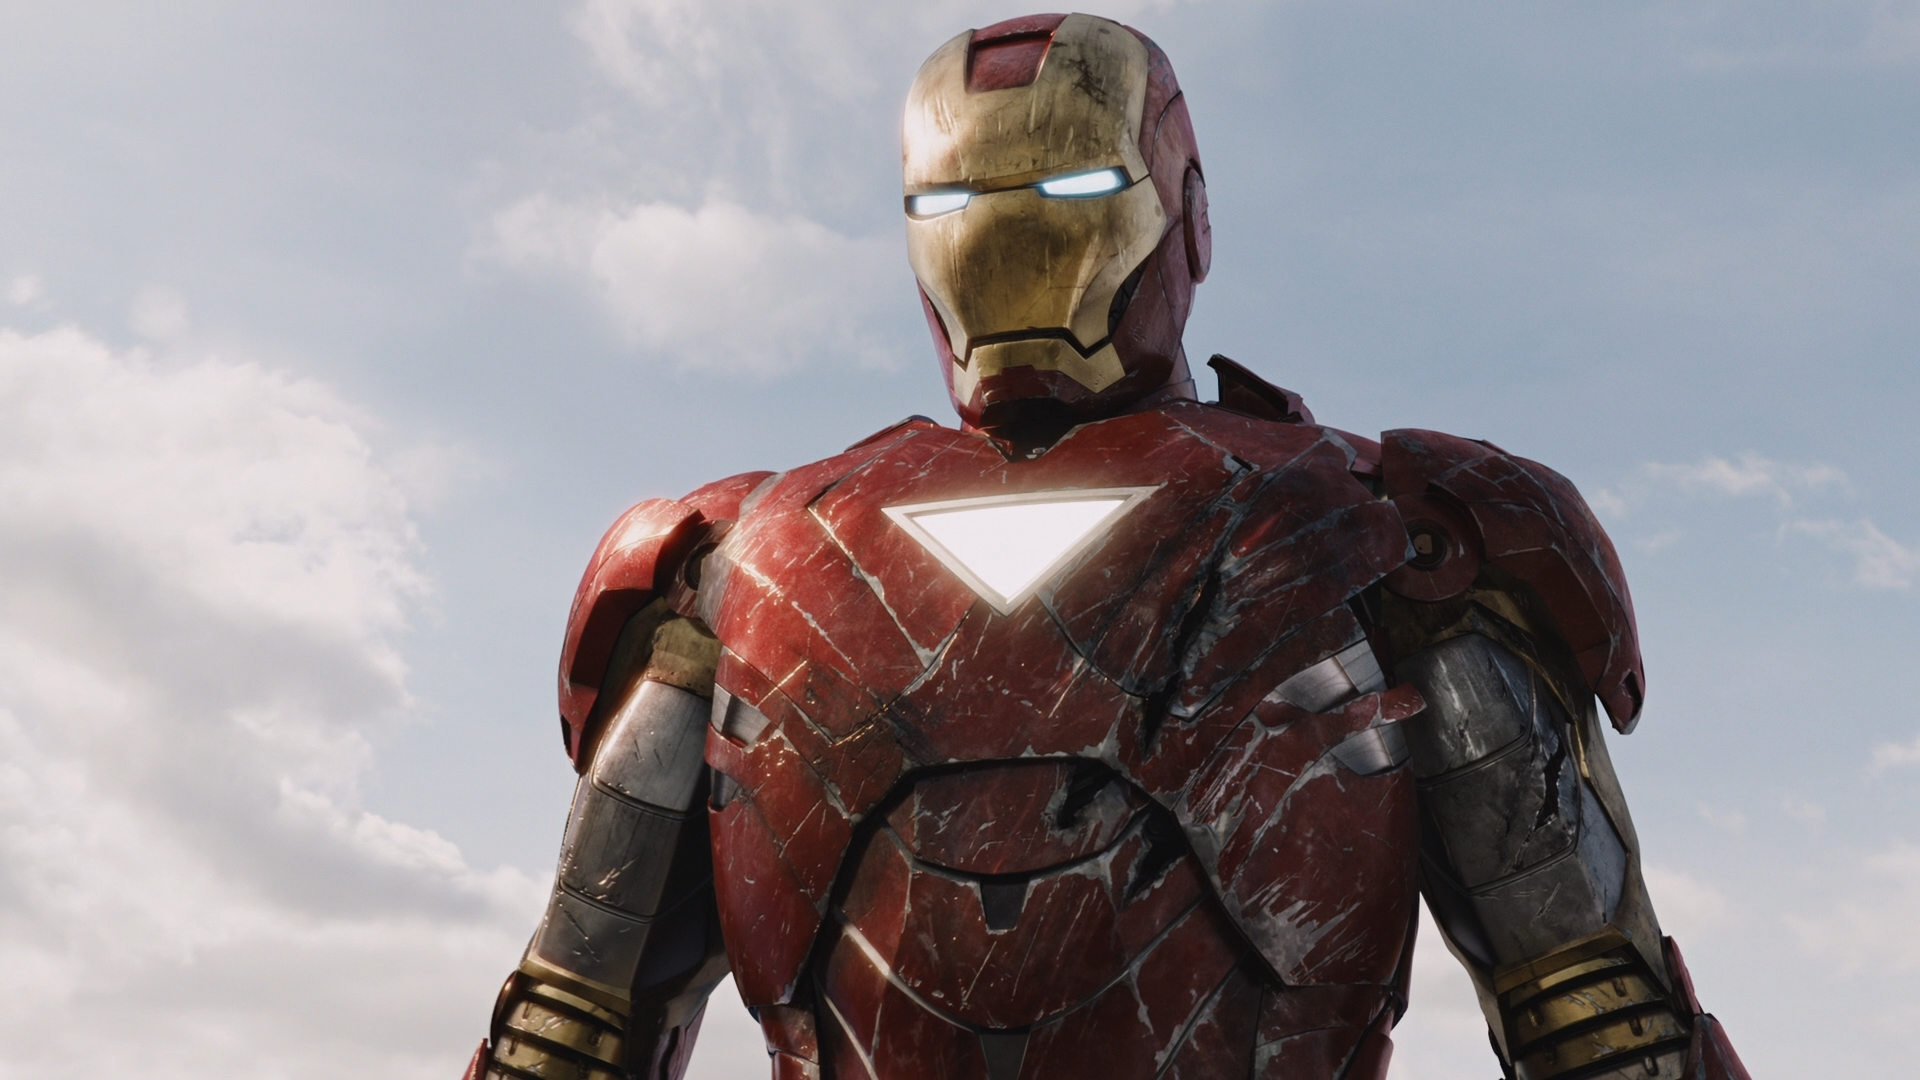 33923 download wallpaper Cinema, Iron Man screensavers and pictures for free